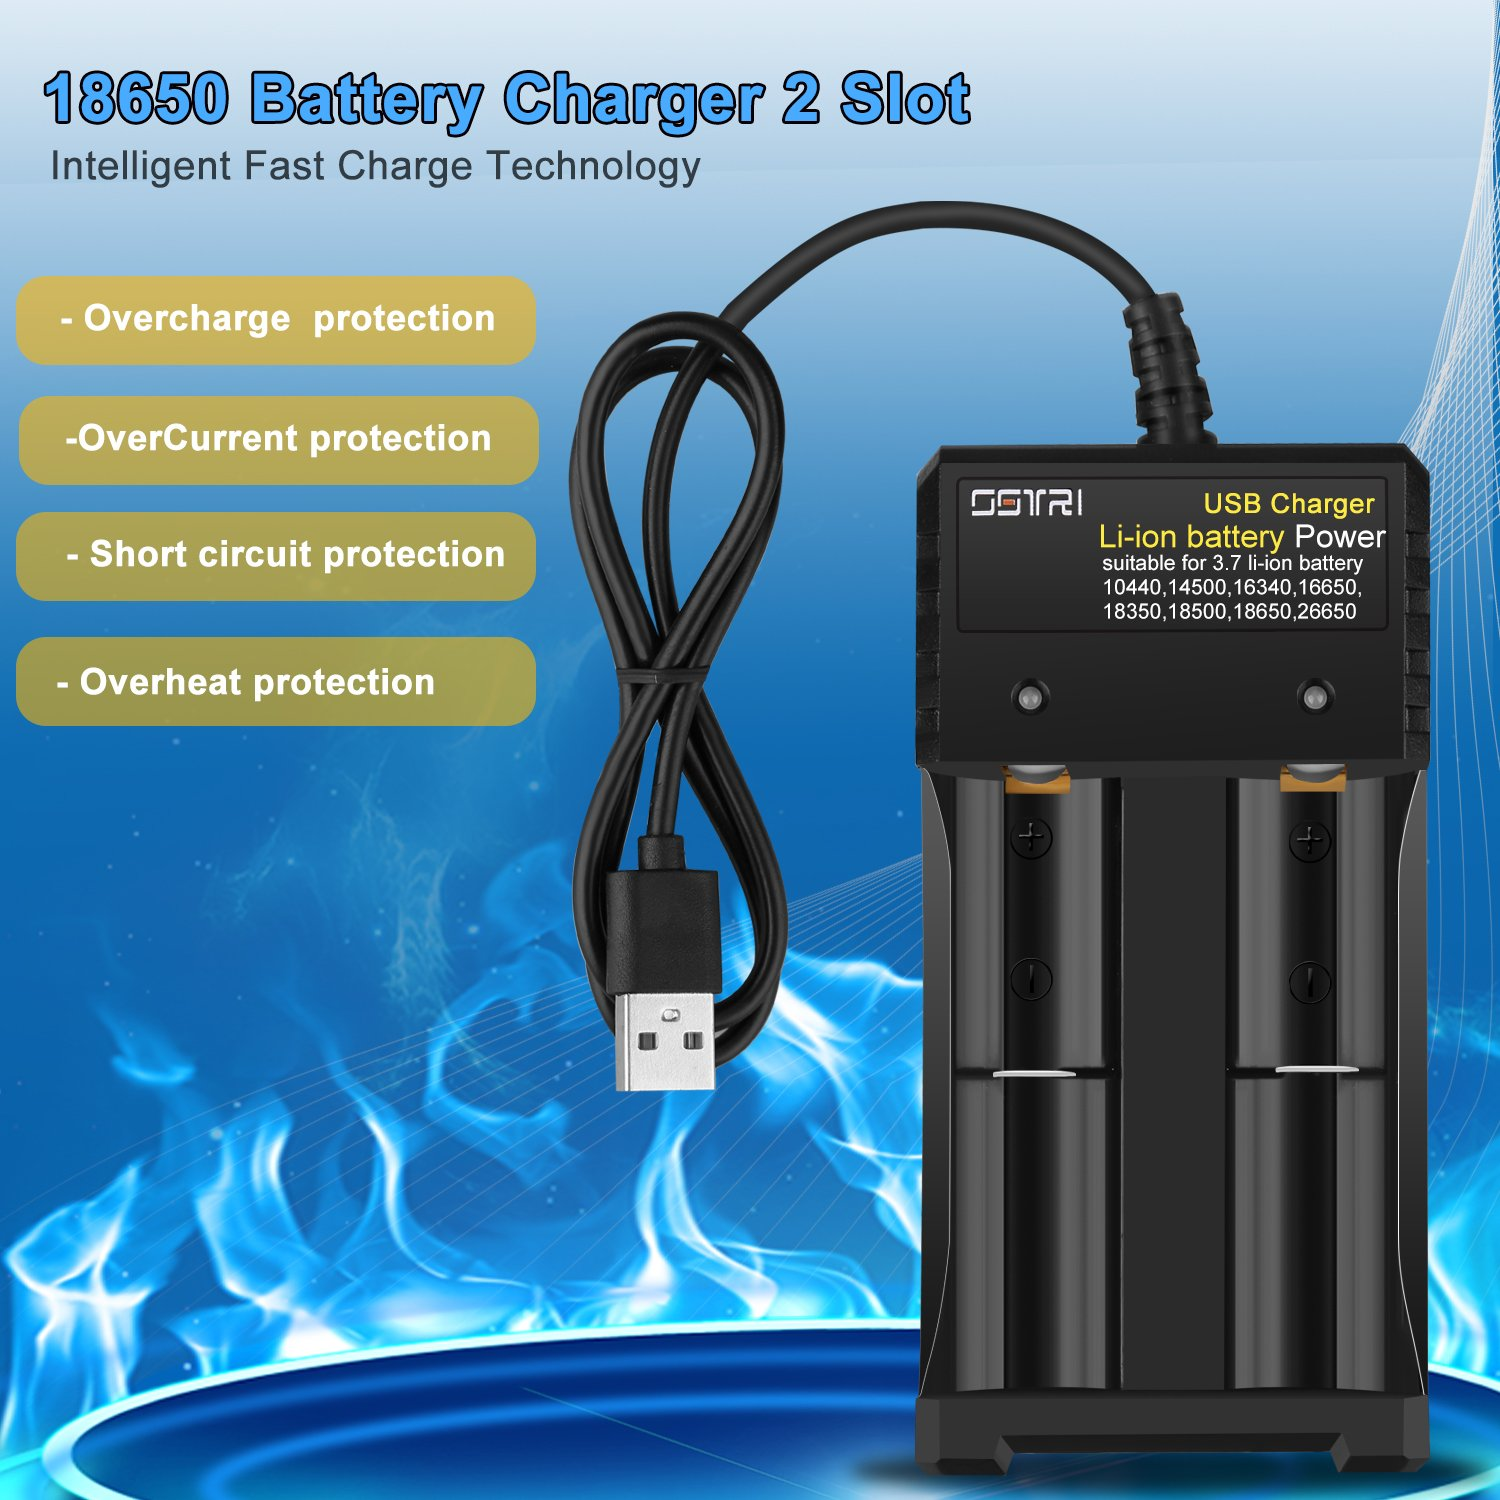 Ostri Li Ion Battery Charger 18650smart Universal 37v Simple Nicd Electronic Circuits Lithium Rechargeable For Aa Aaa 26650 18650 18500 18350 17670 16340